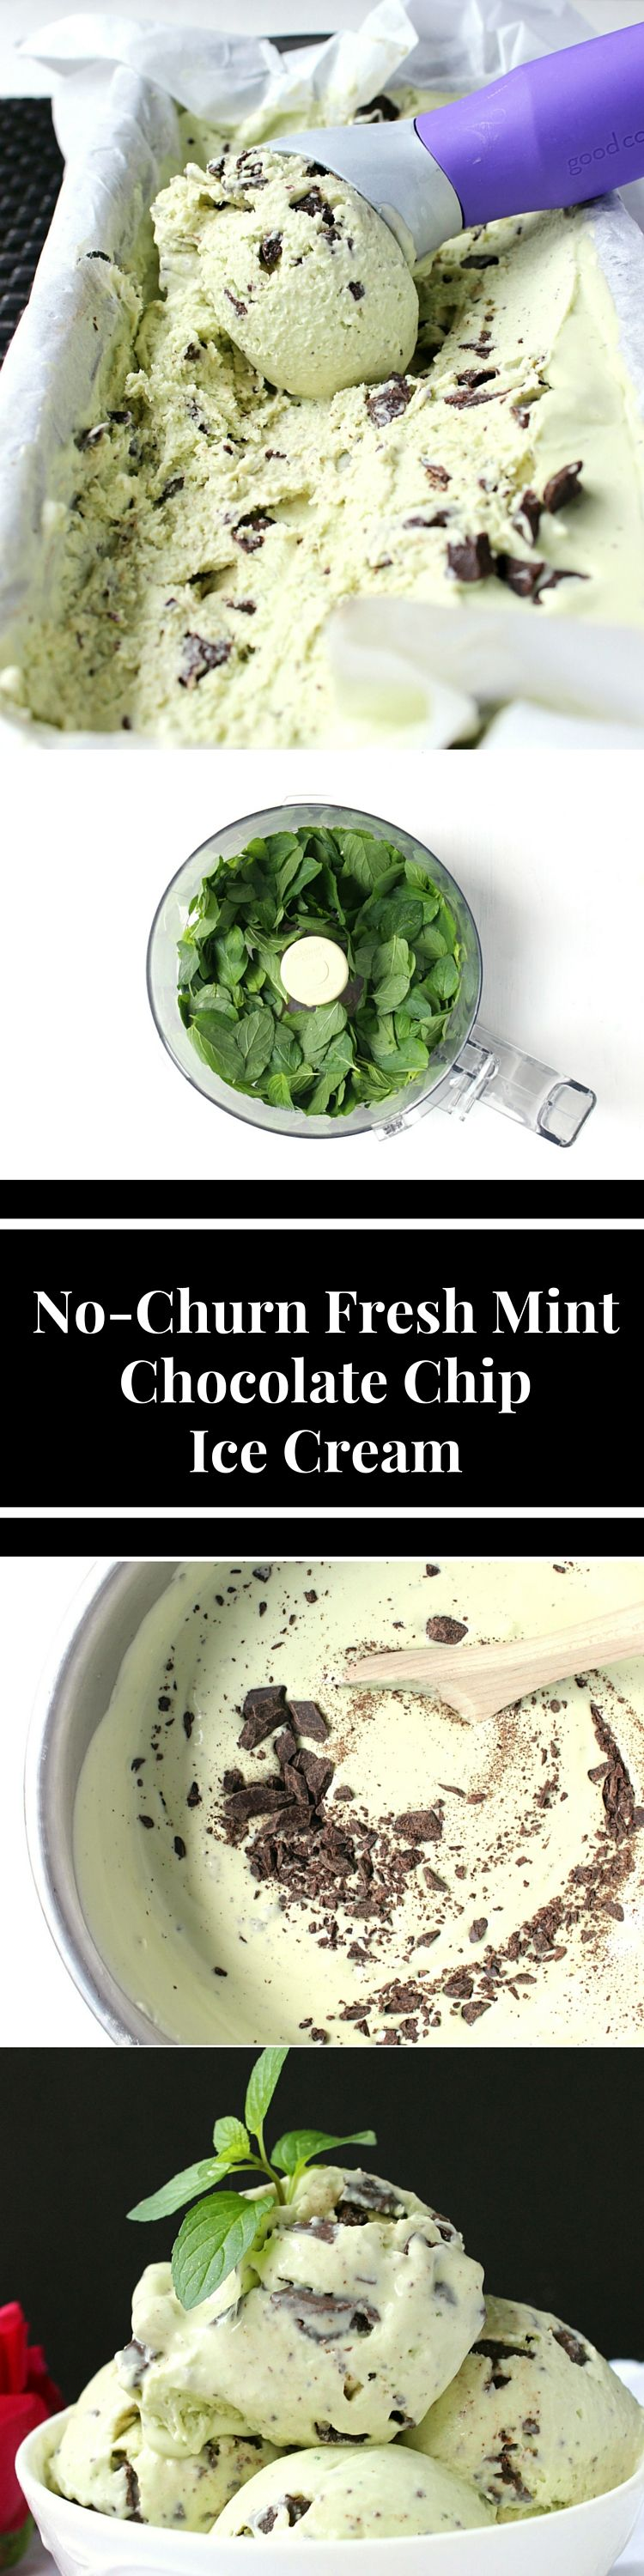 recipe: fresh mint ice cream recipe no eggs [32]